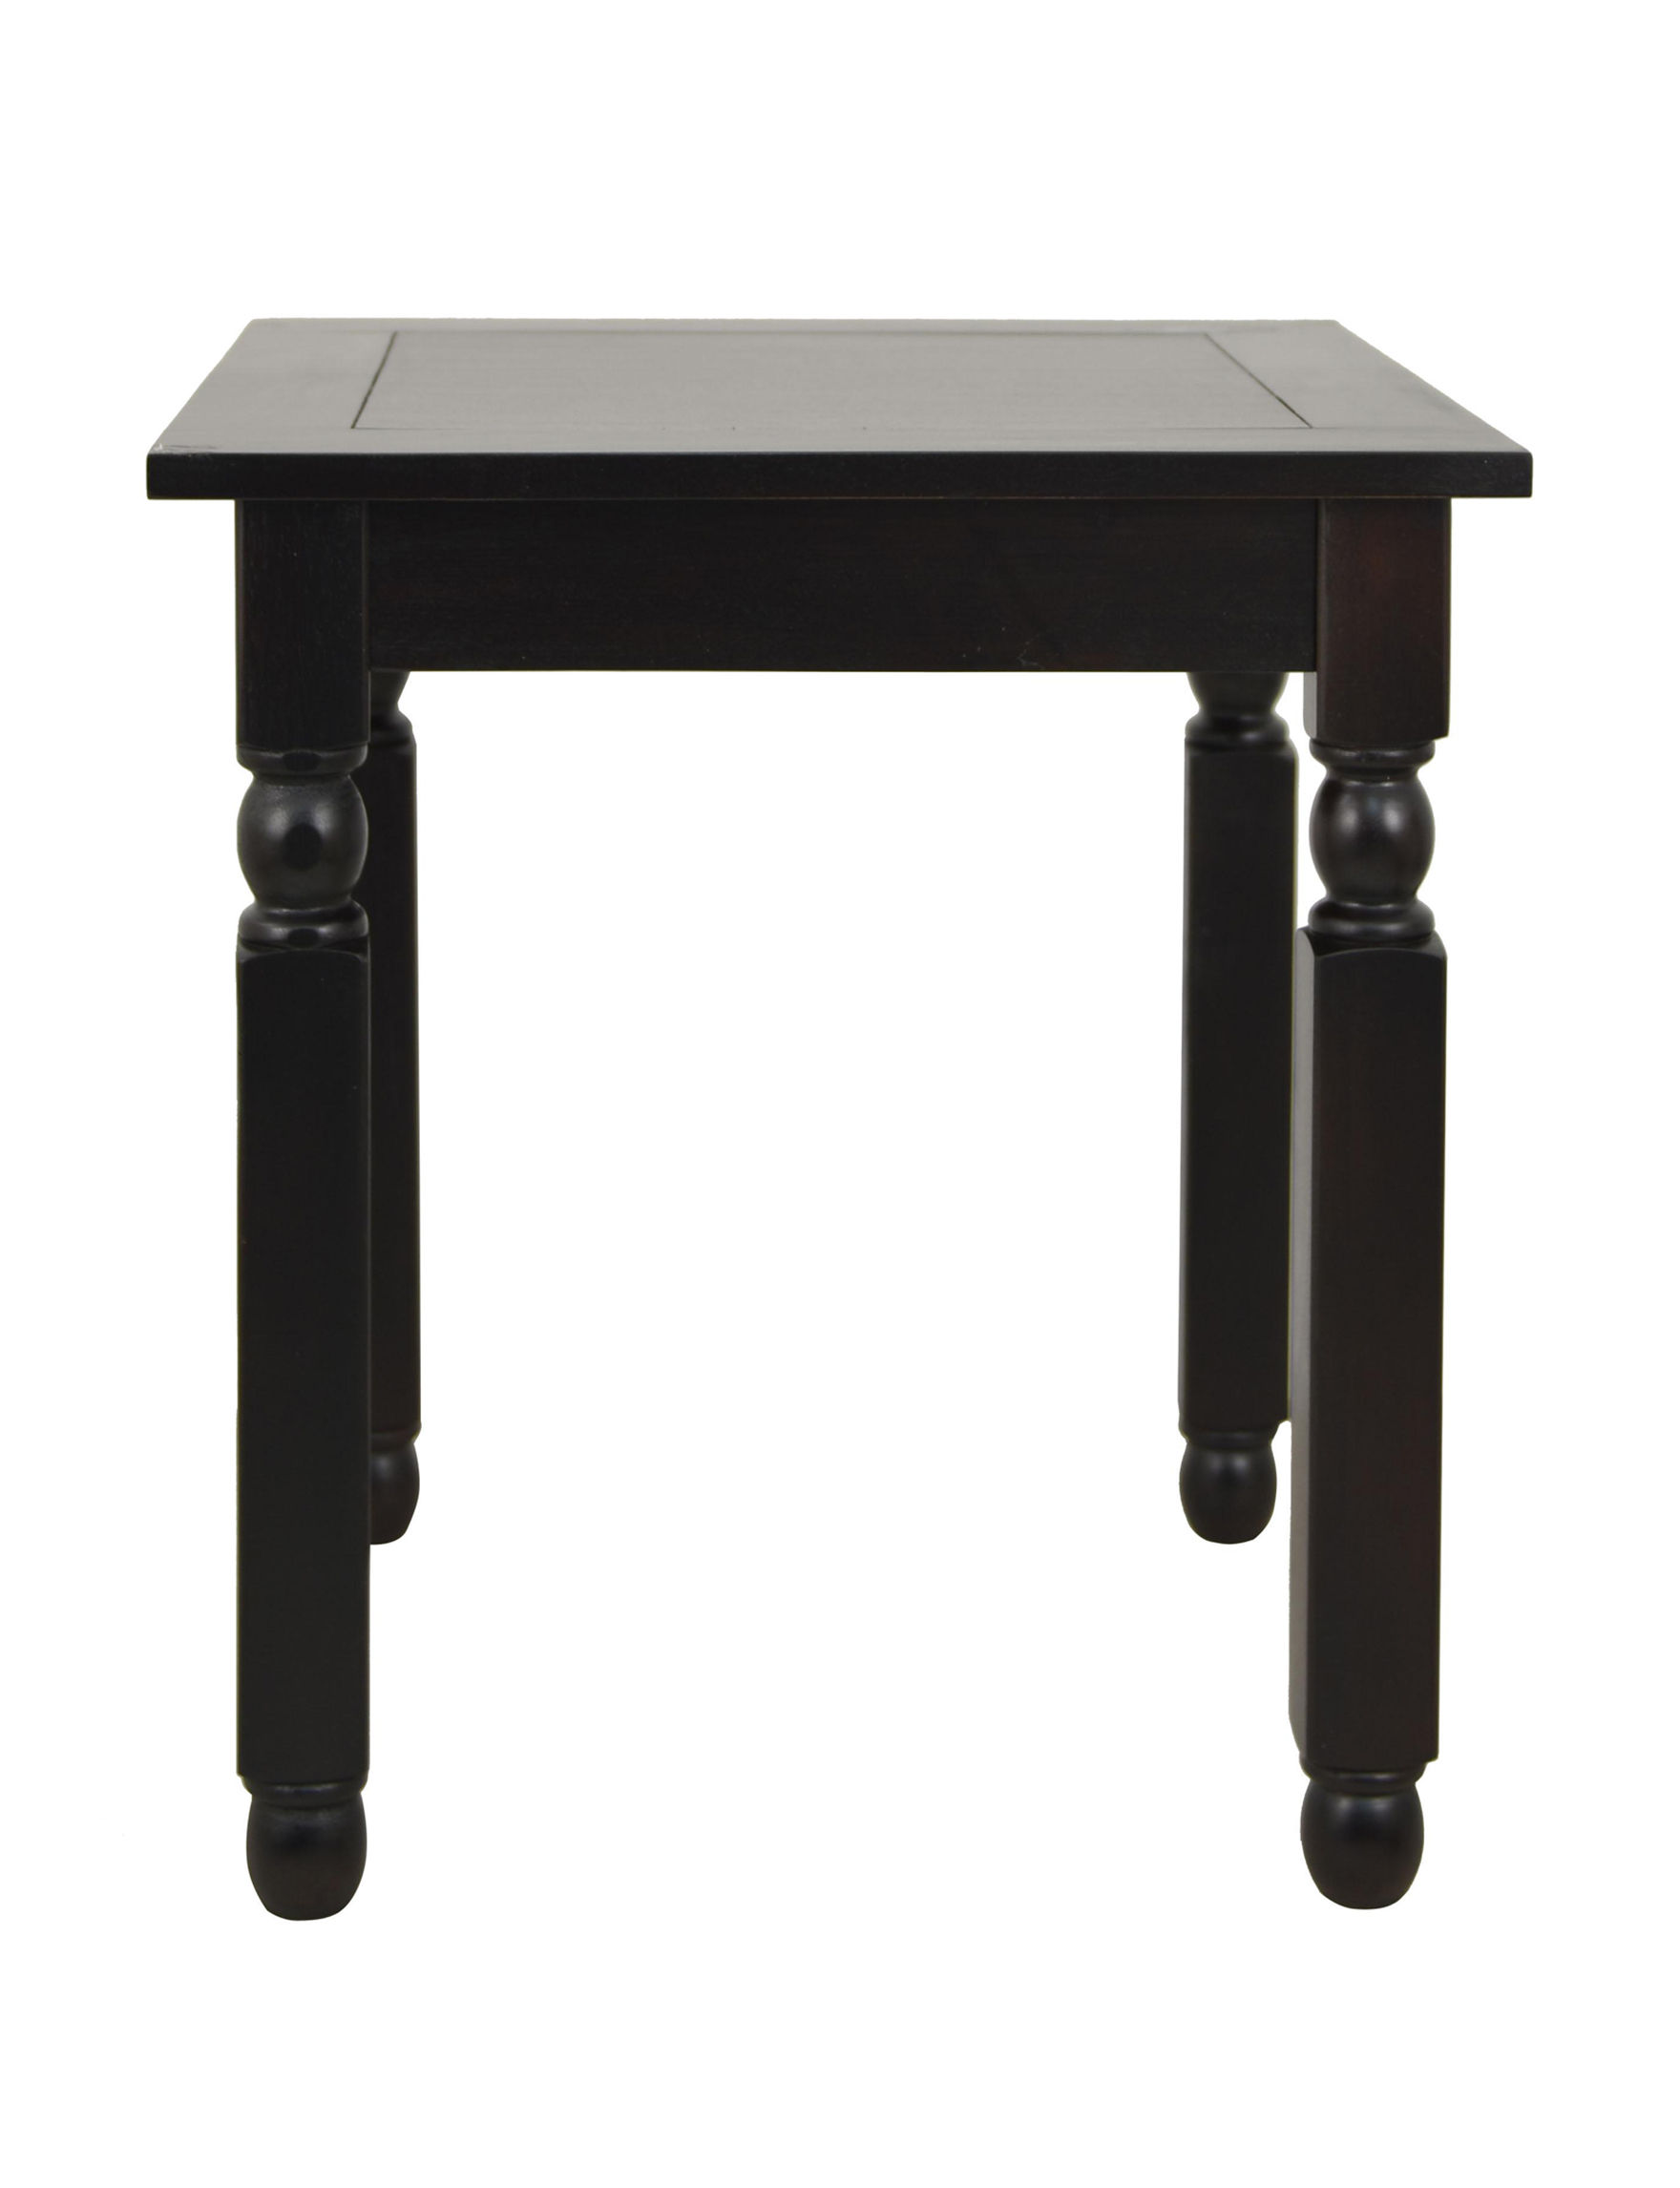 Decor Therapy Espresso Accent & End Tables Living Room Furniture